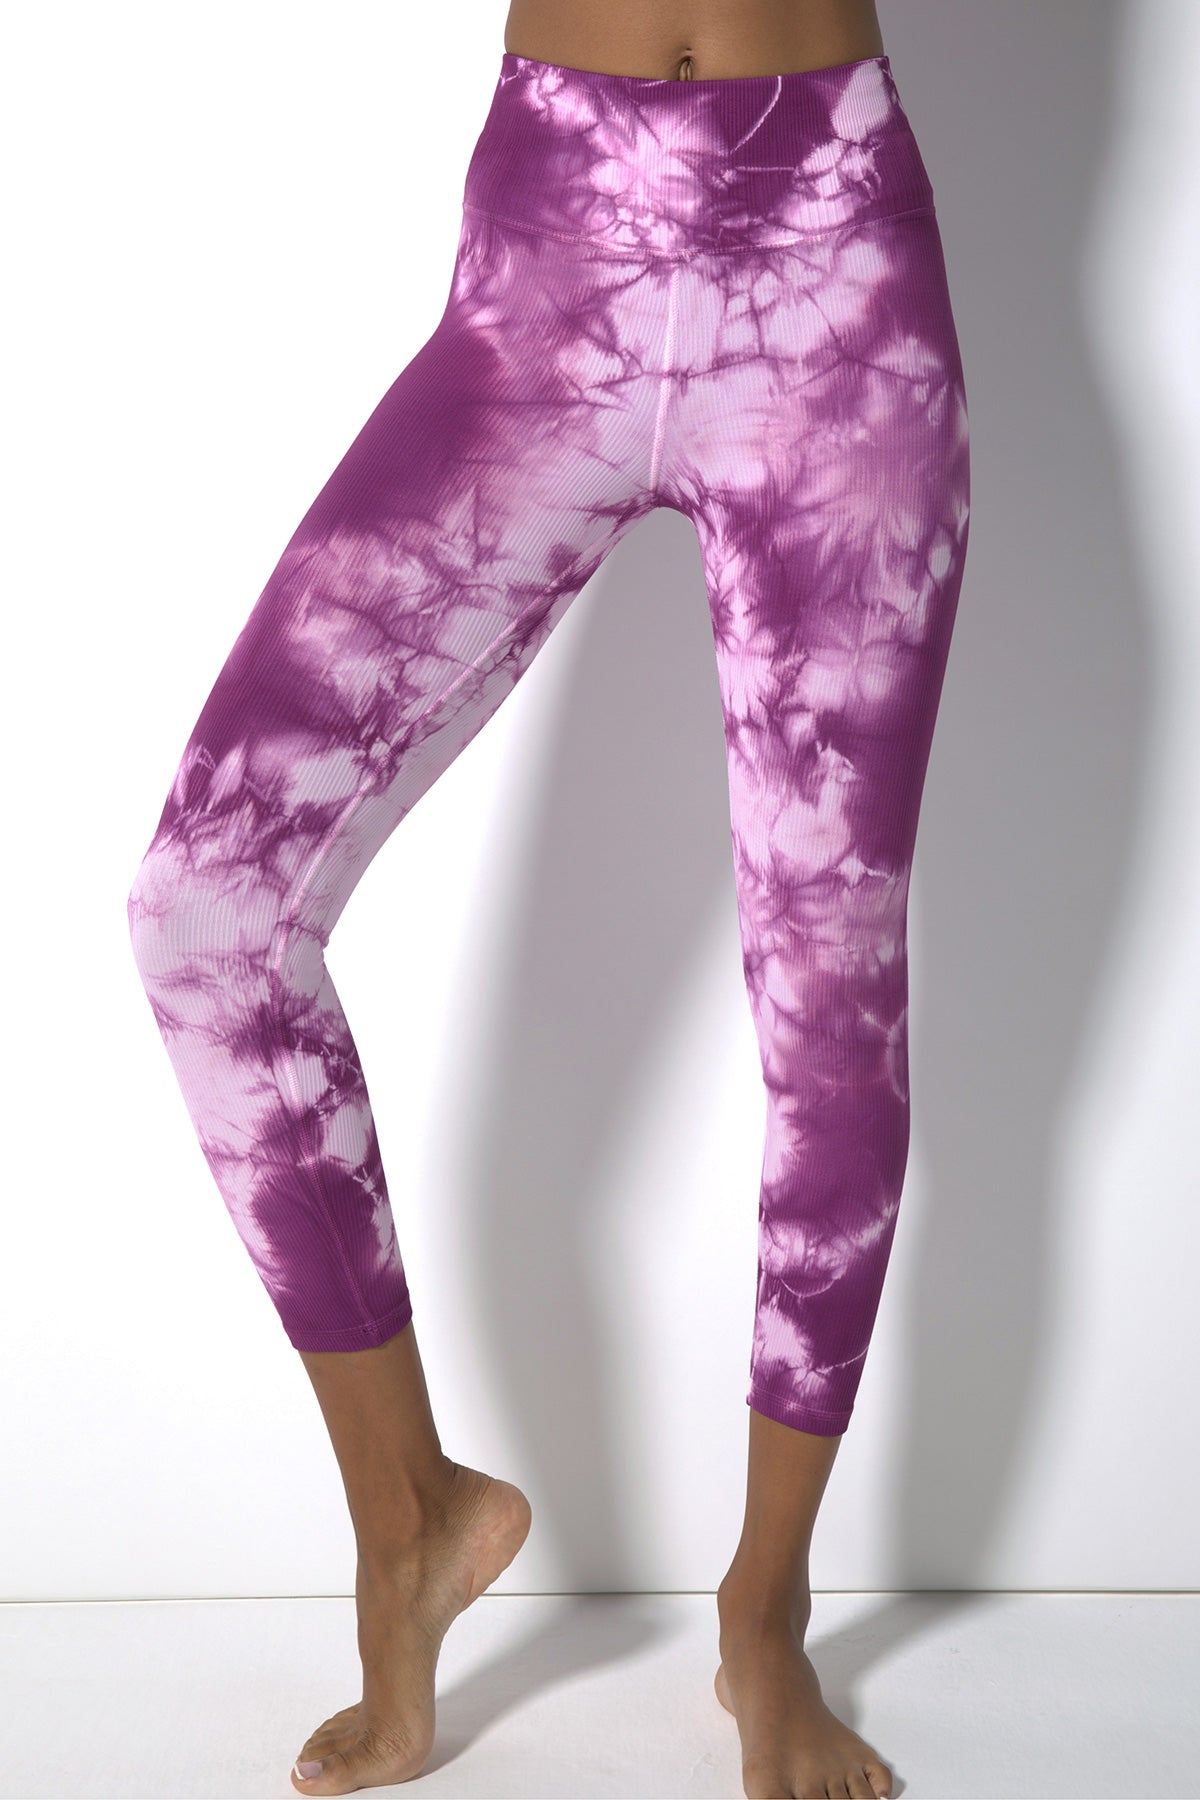 Haze Renee 7/8 Rib Legging in Desert Rose Haze